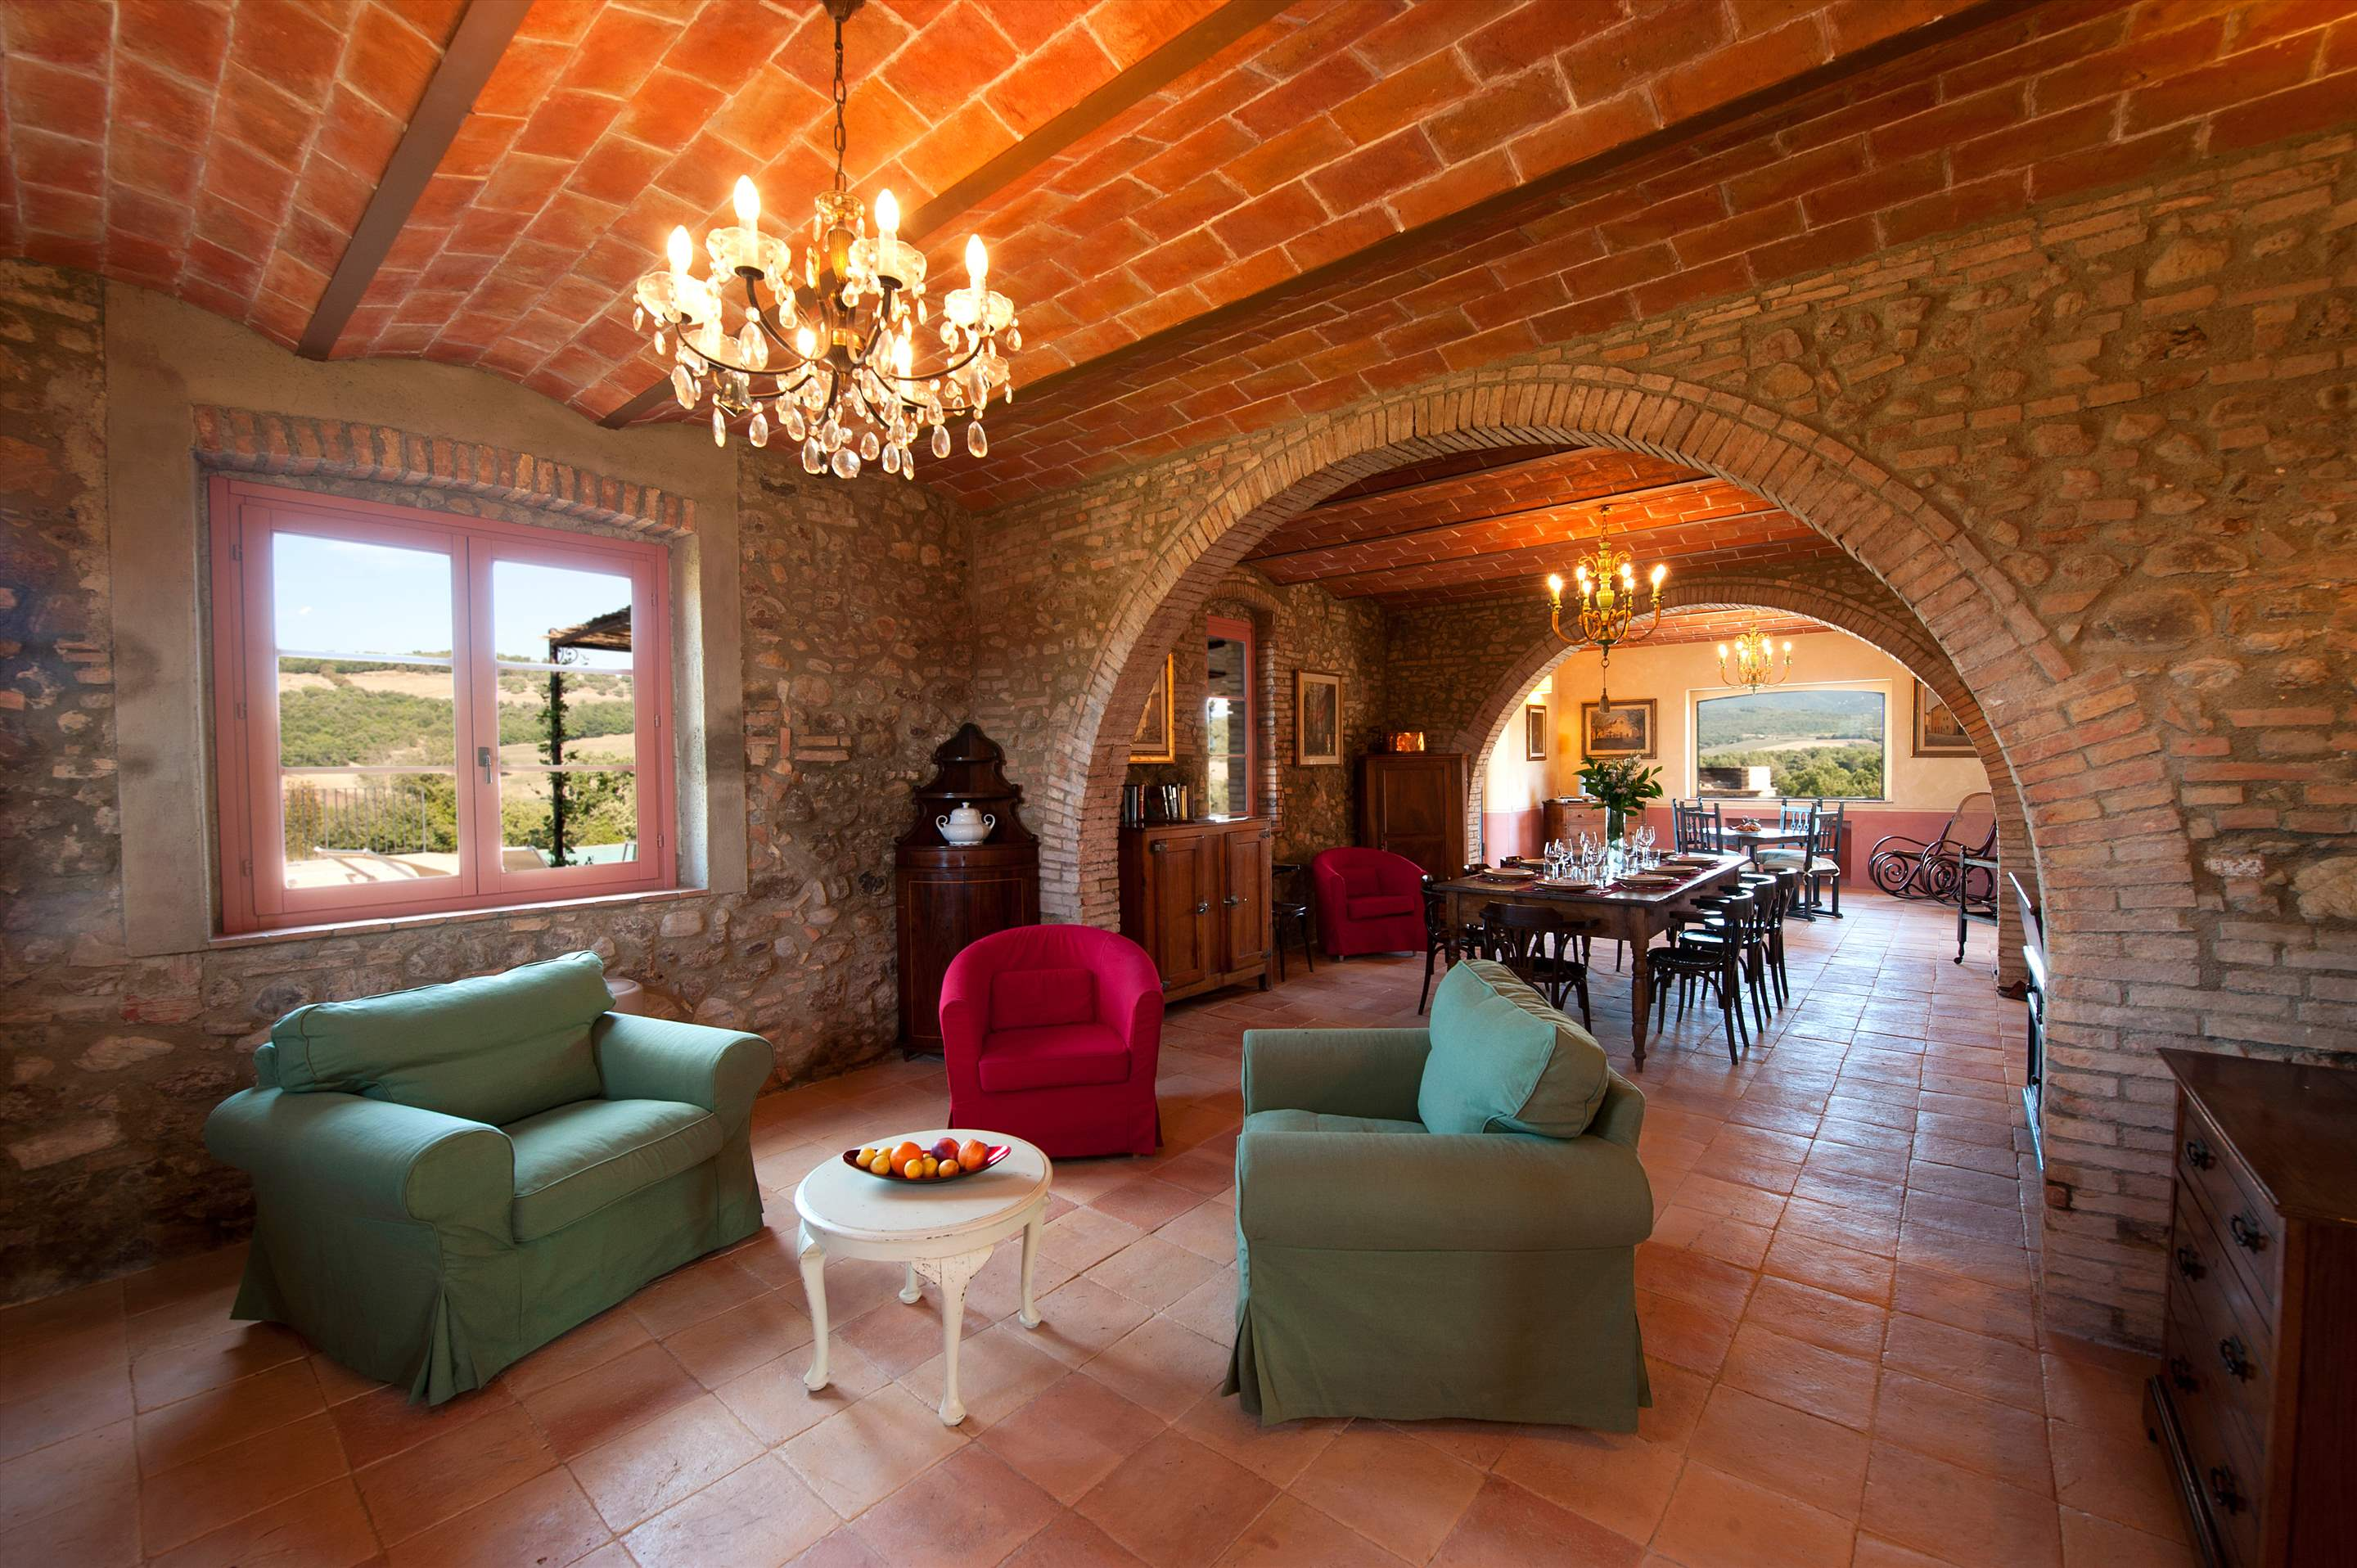 Podere I Gotti, 5 bedroom villa in Tuscany Coast, Tuscany Photo #5